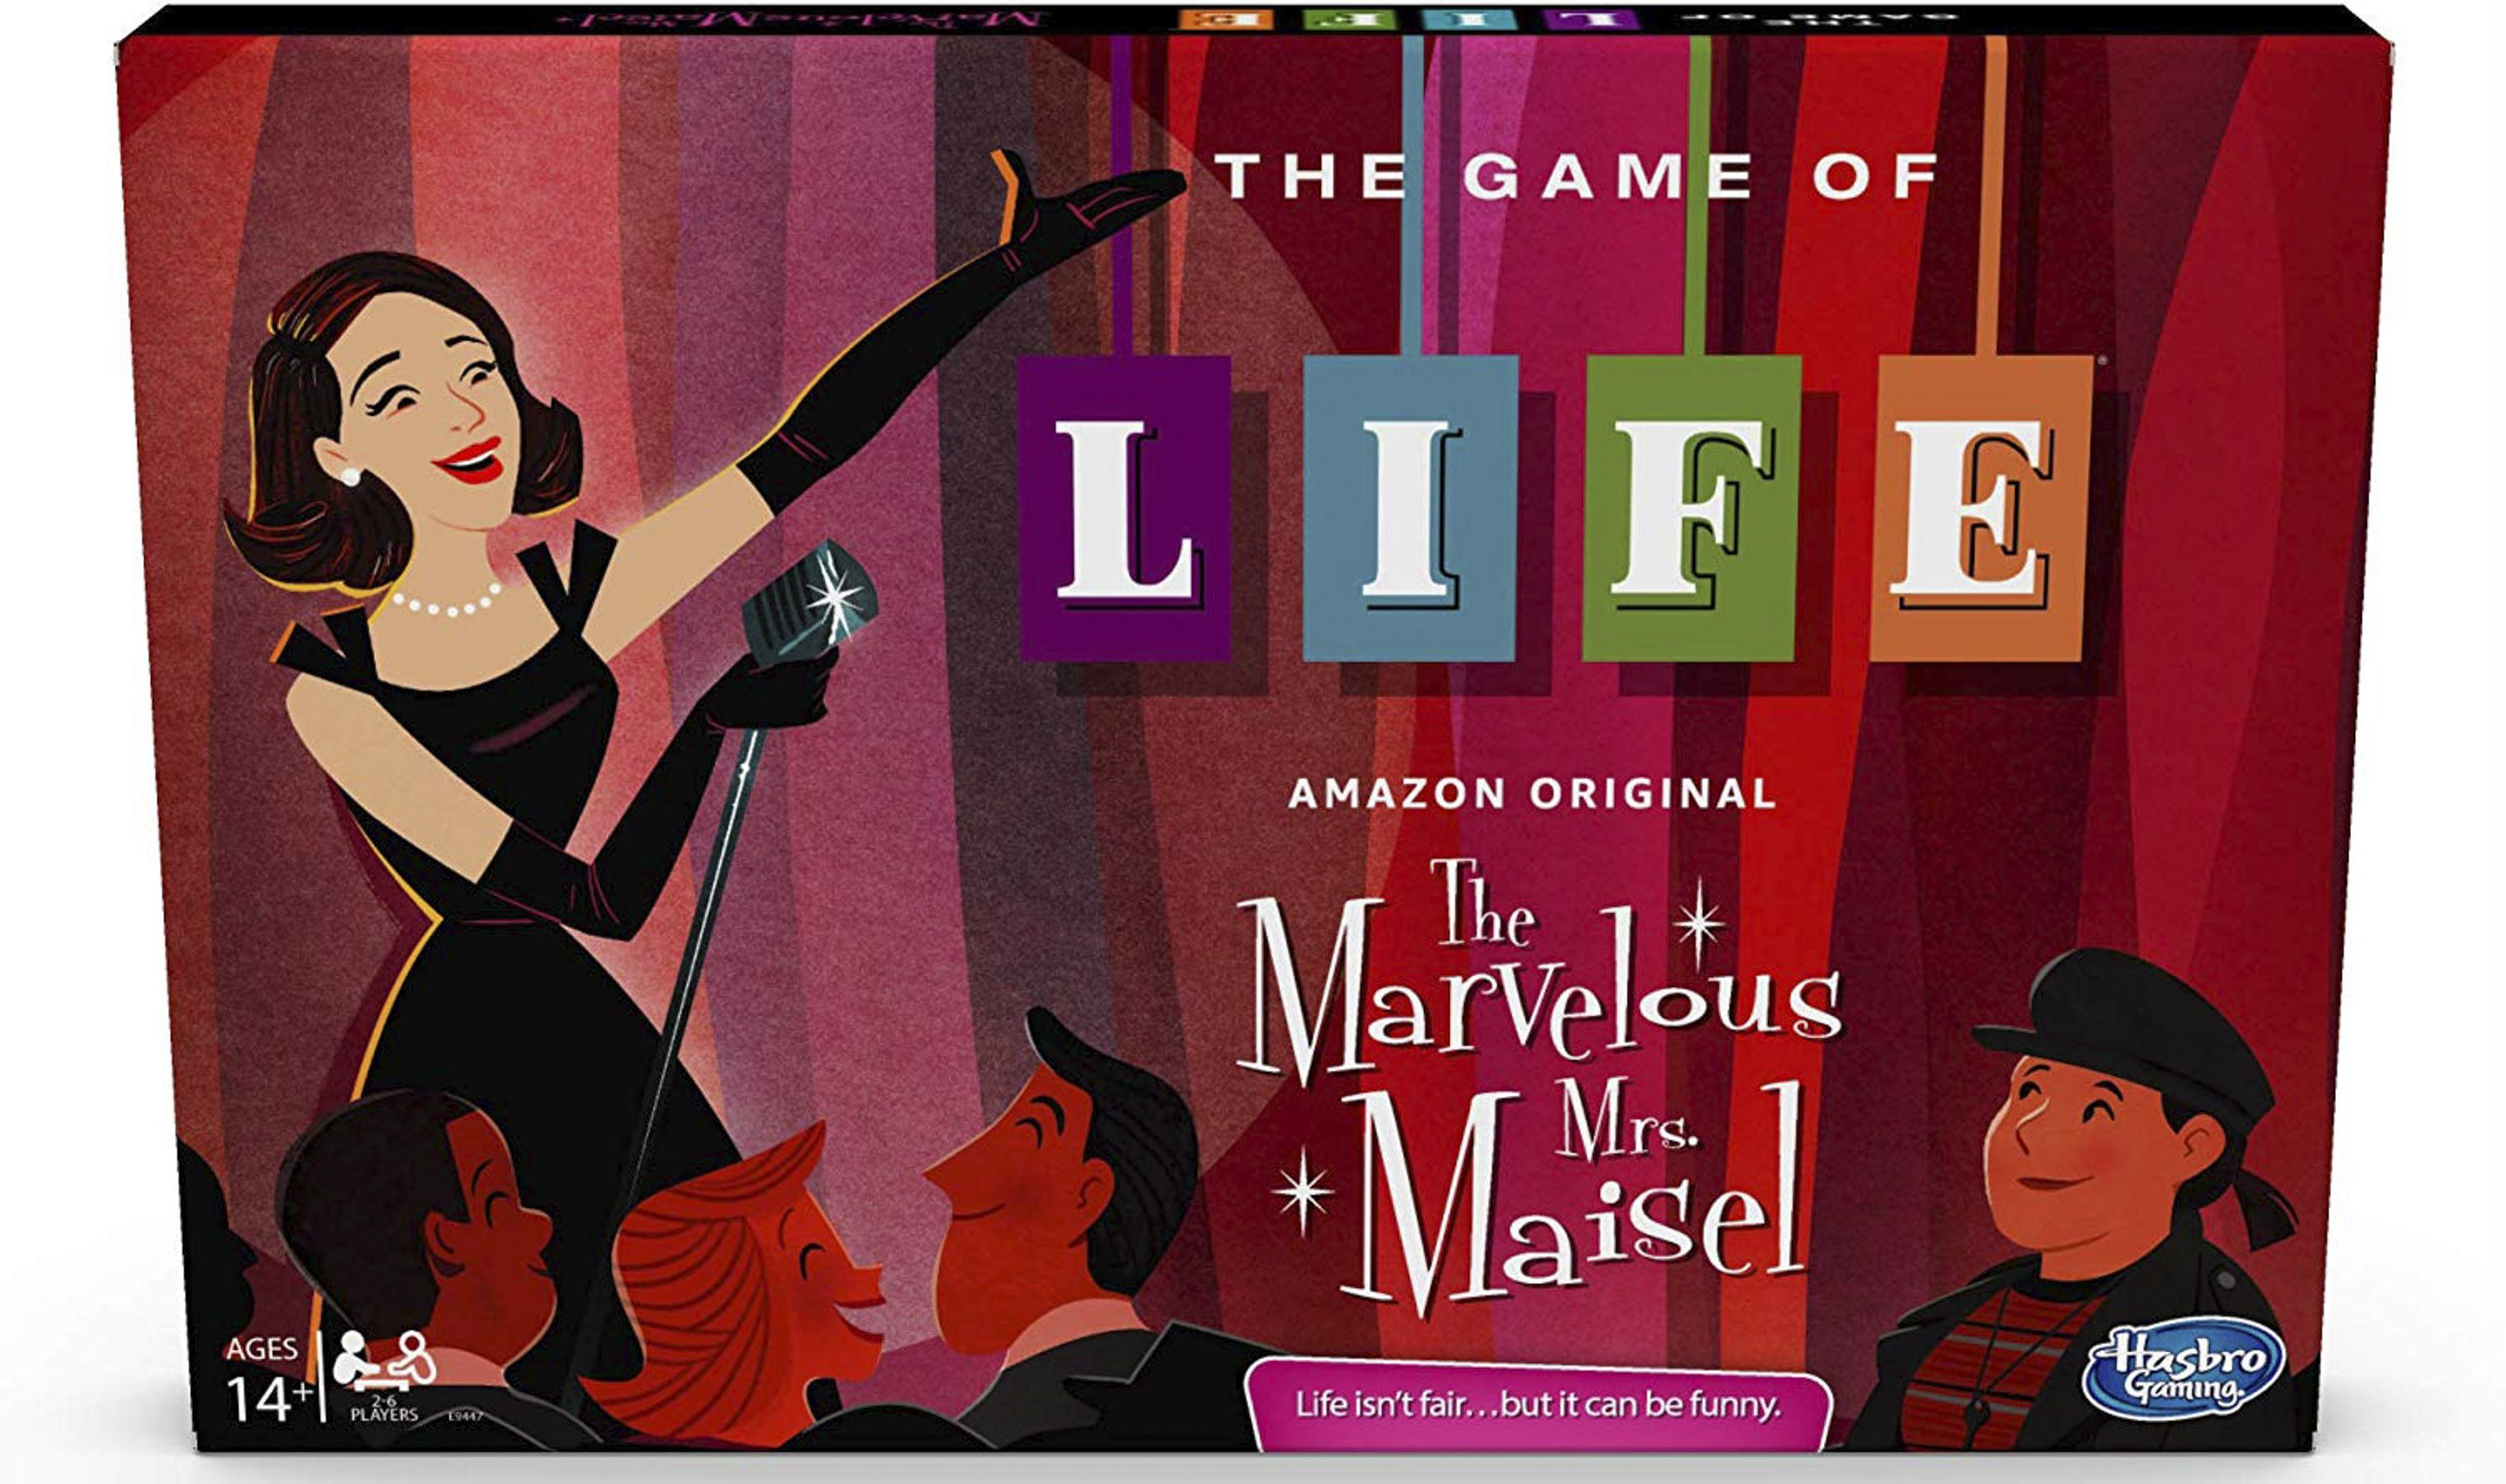 'The Marvelous Mrs. Maisel' just got its own board game